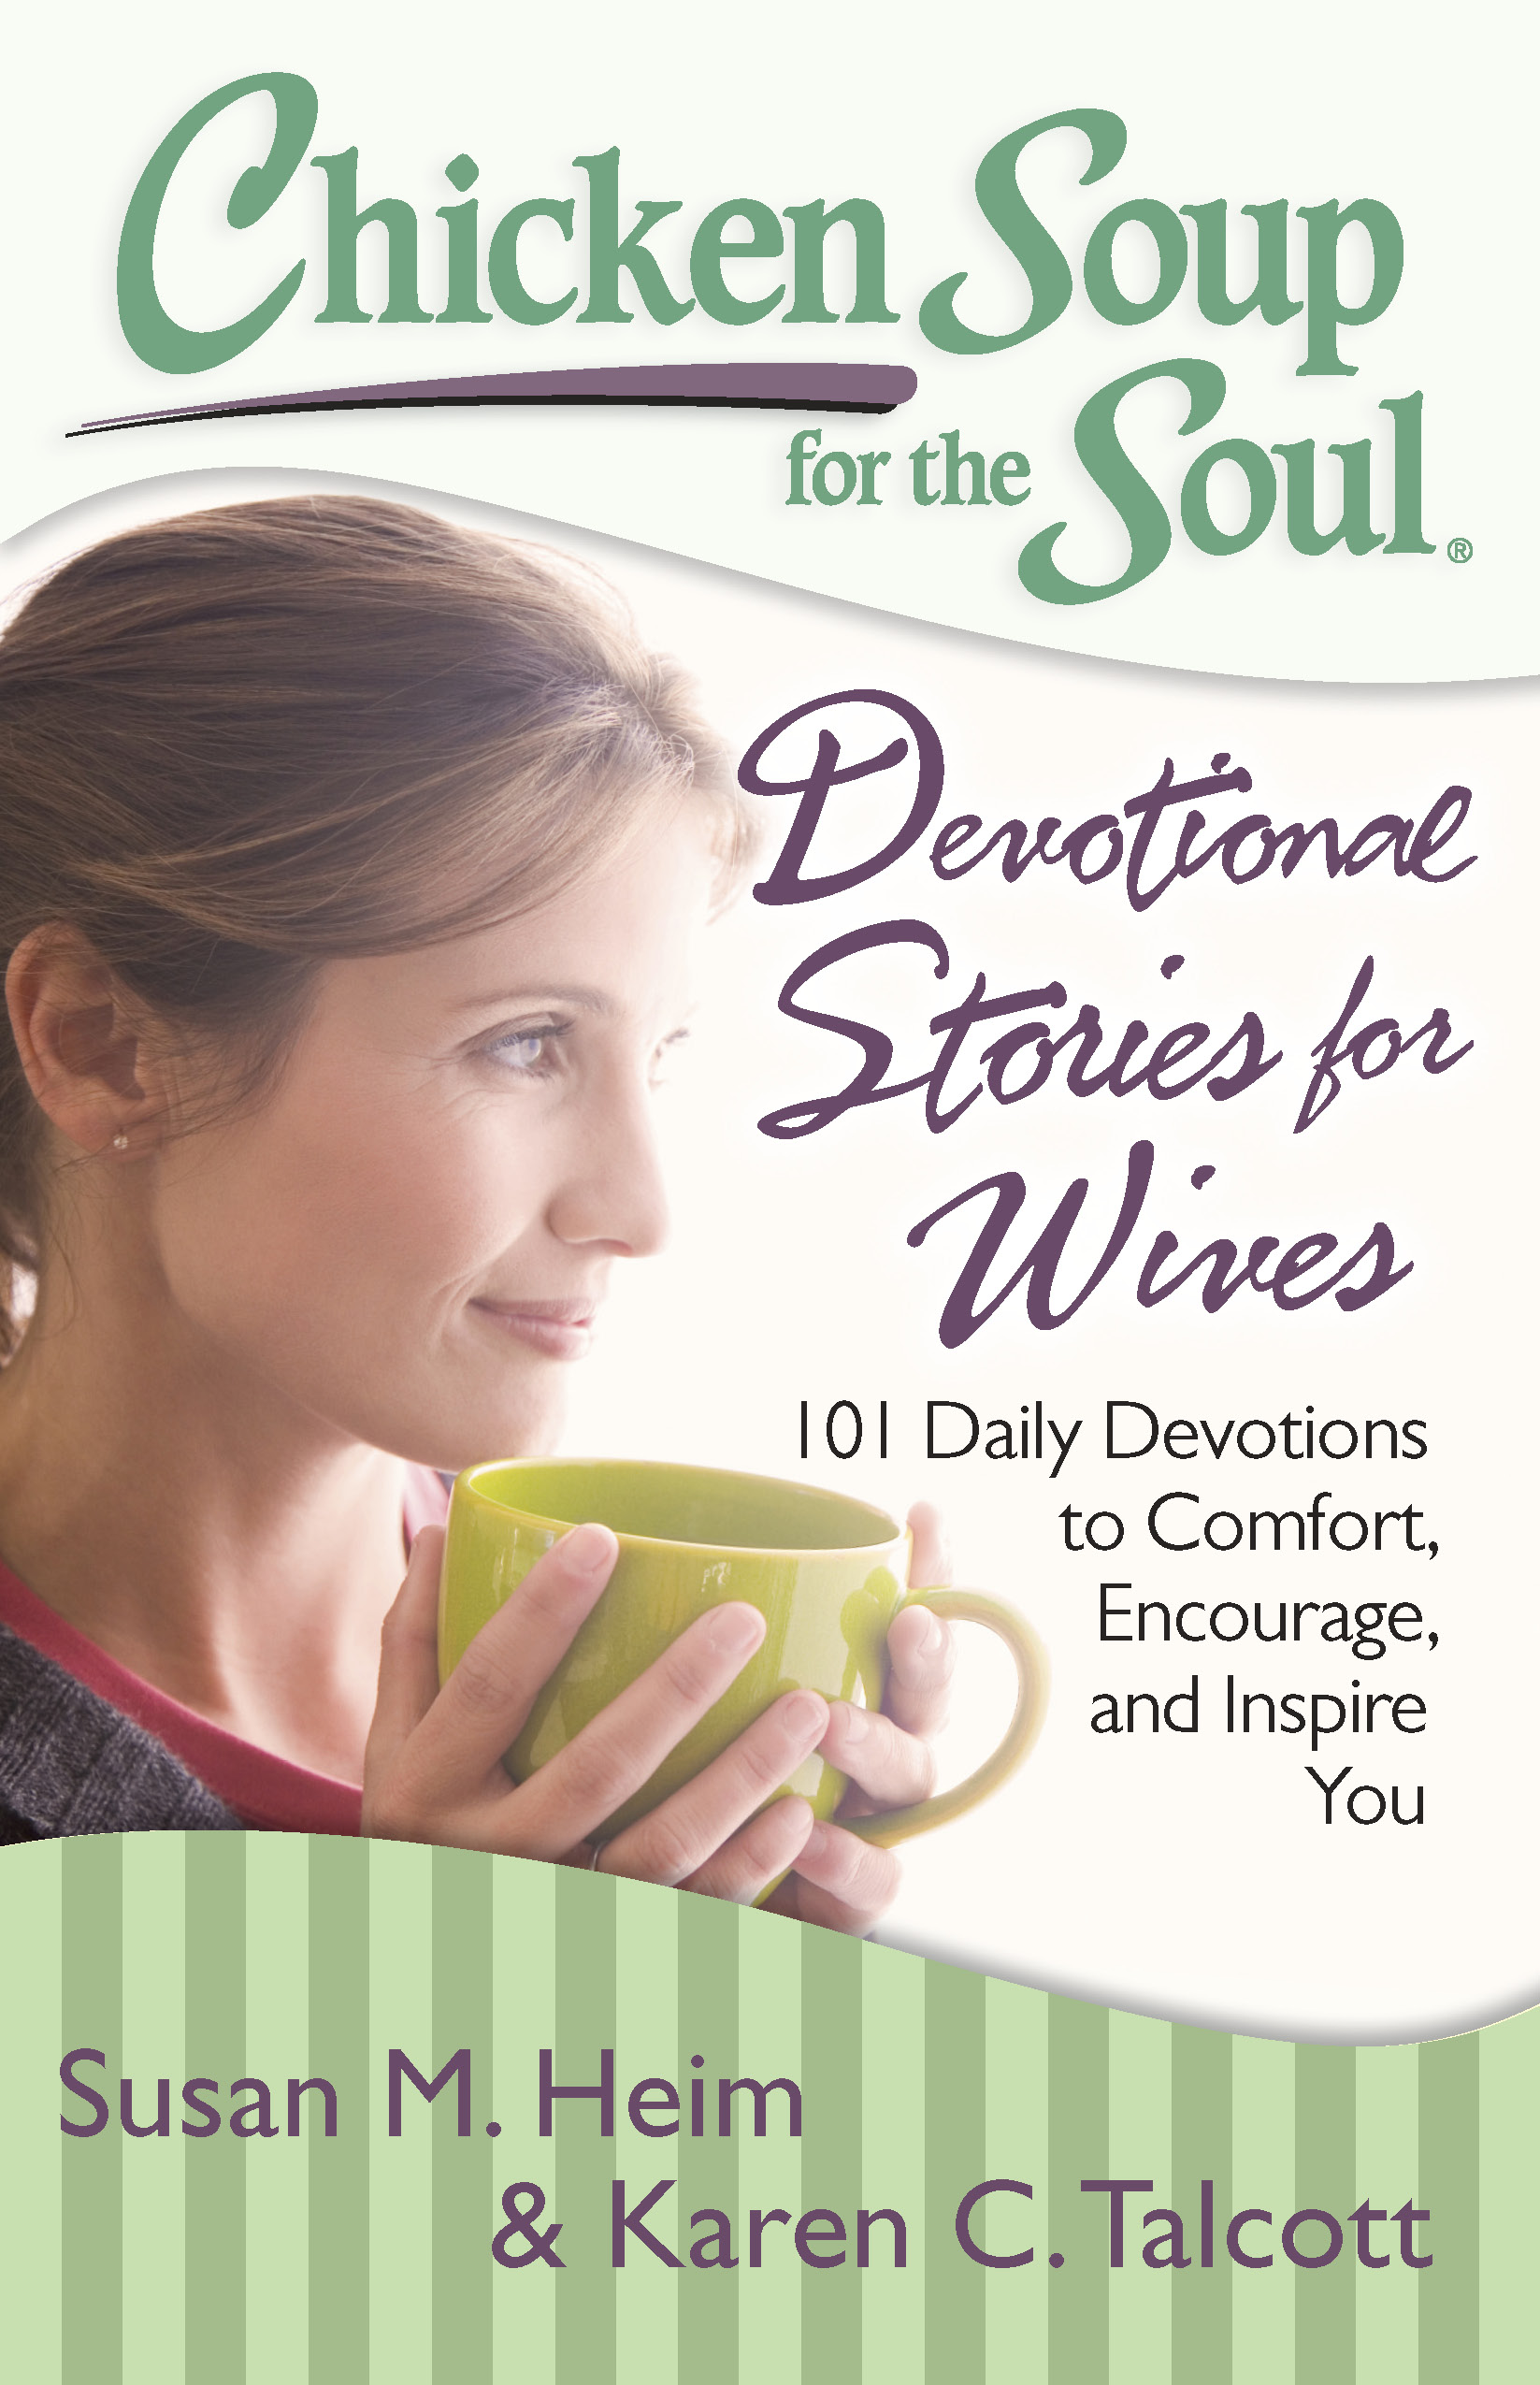 I have an article published in Devotional Stories for Wives.